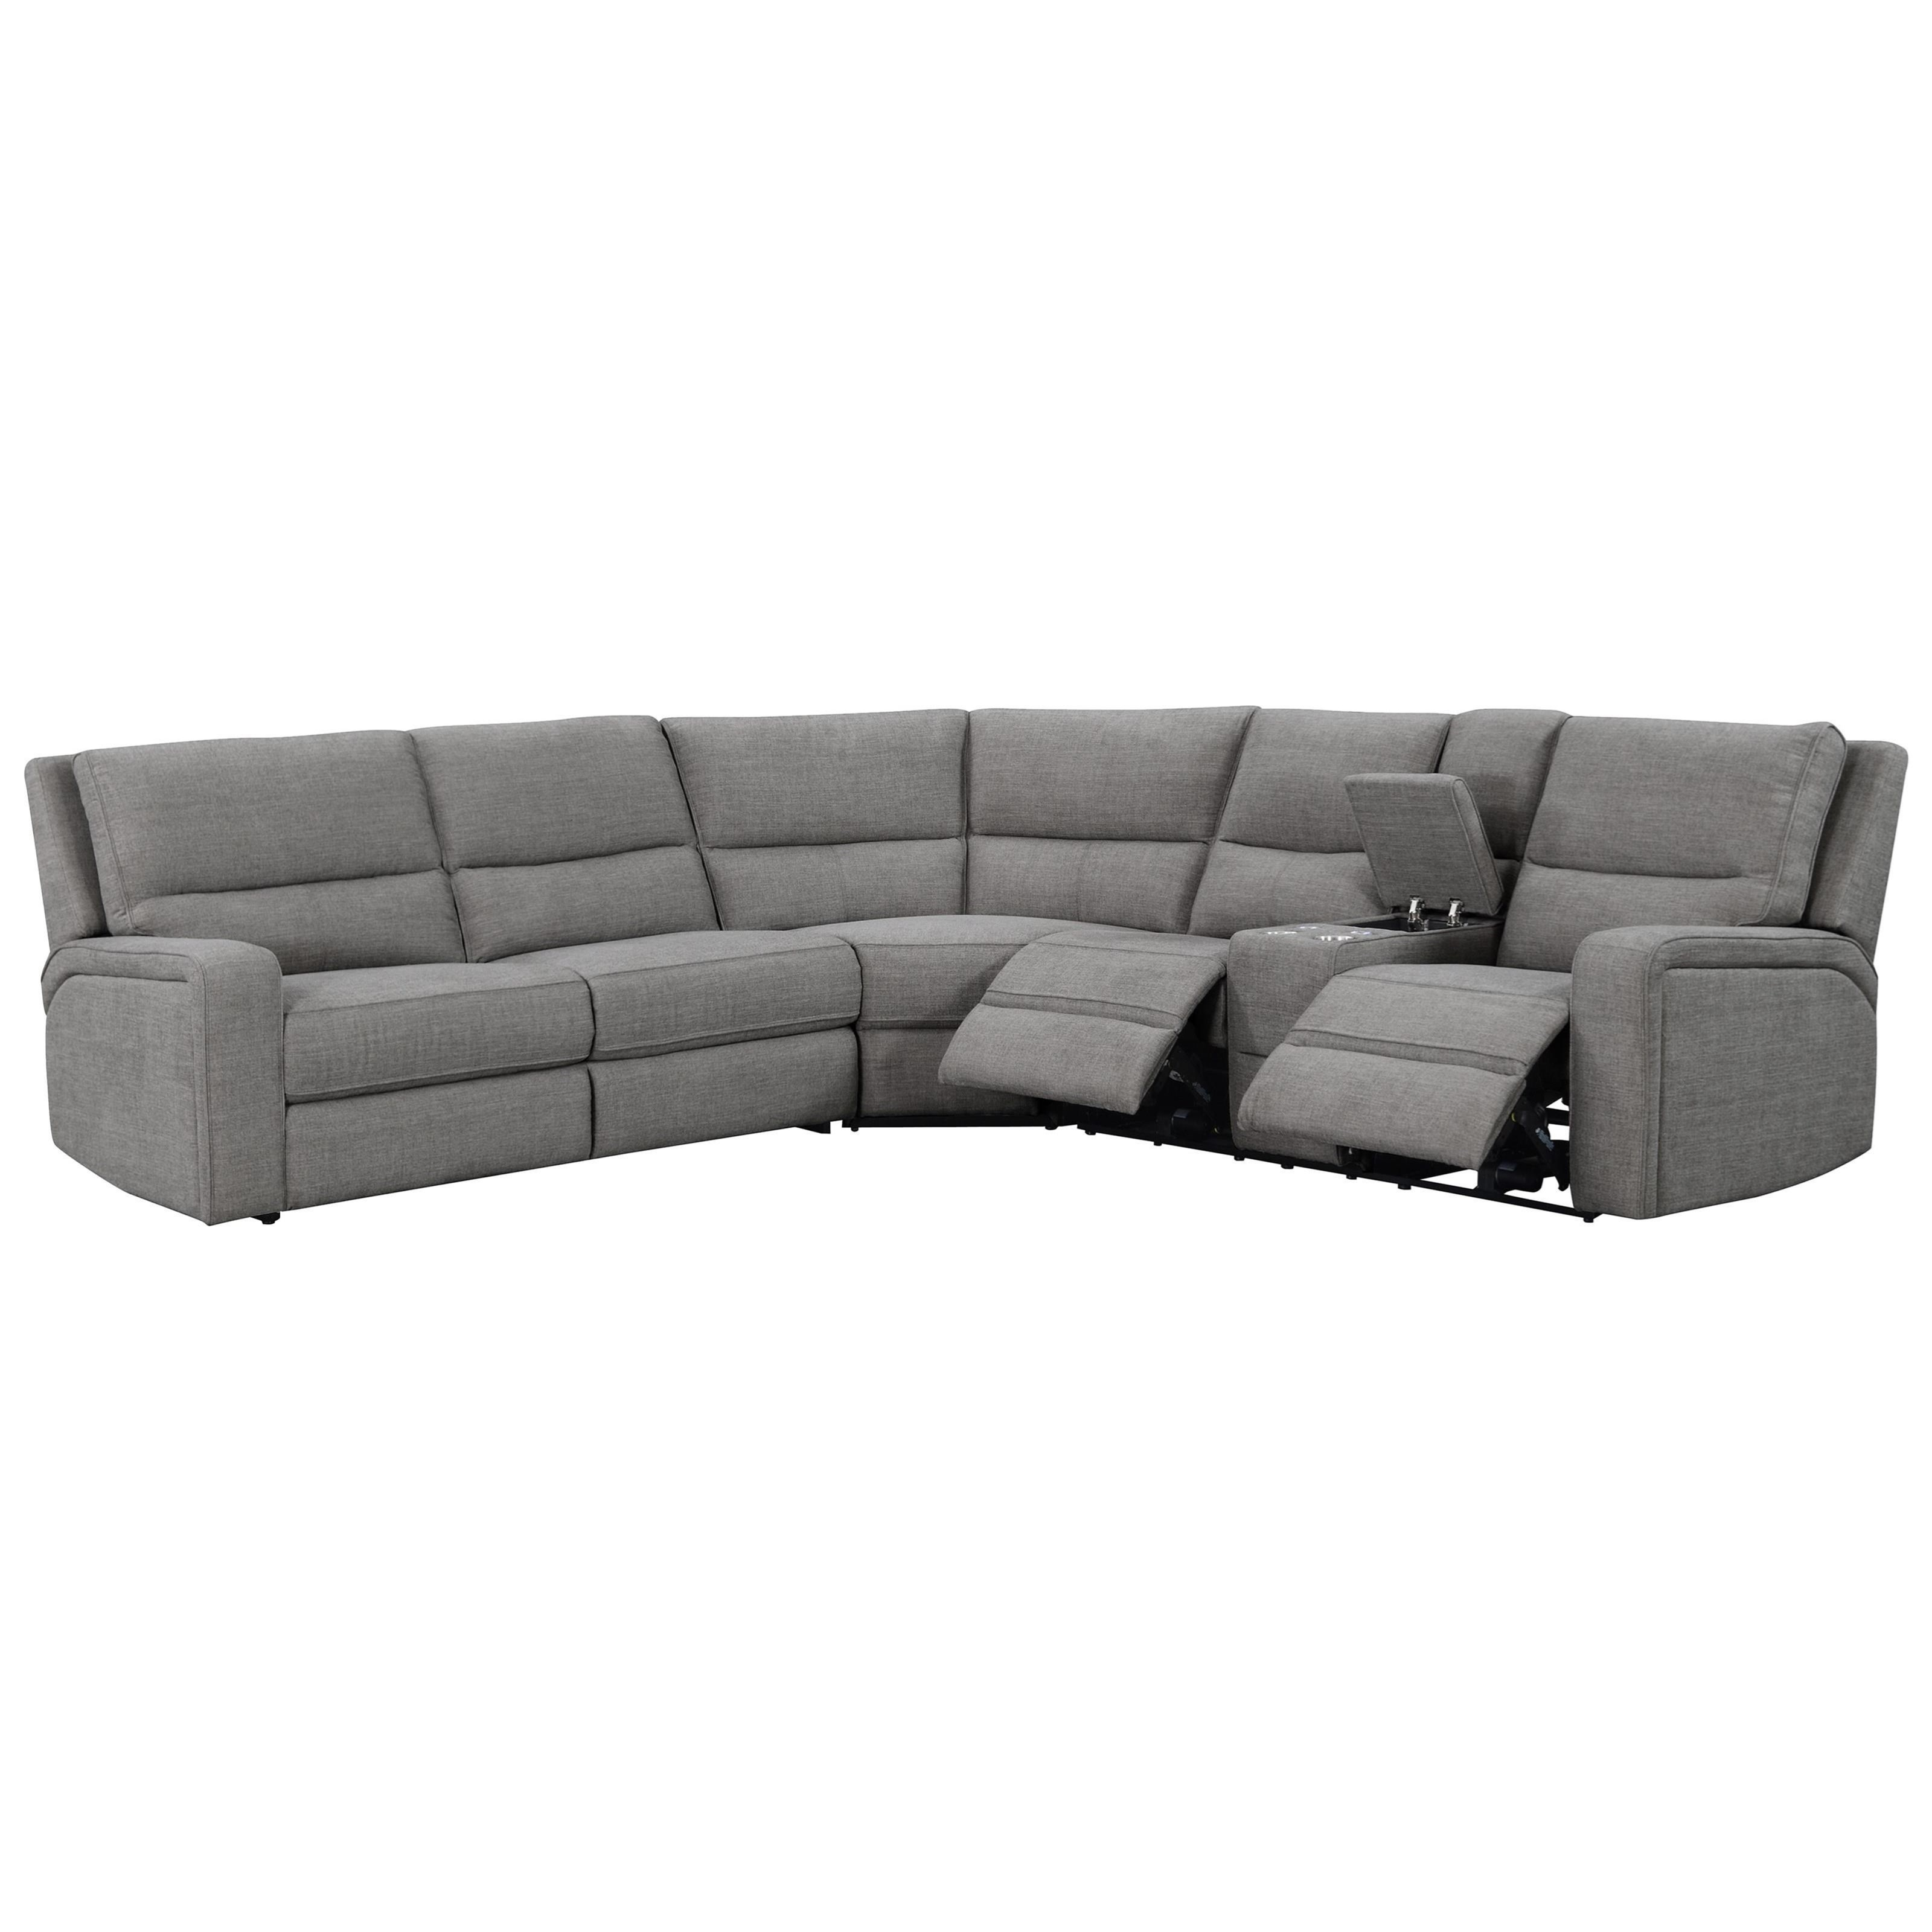 Medford 3-Piece Power Reclining Sectional by Emerald at Northeast Factory Direct